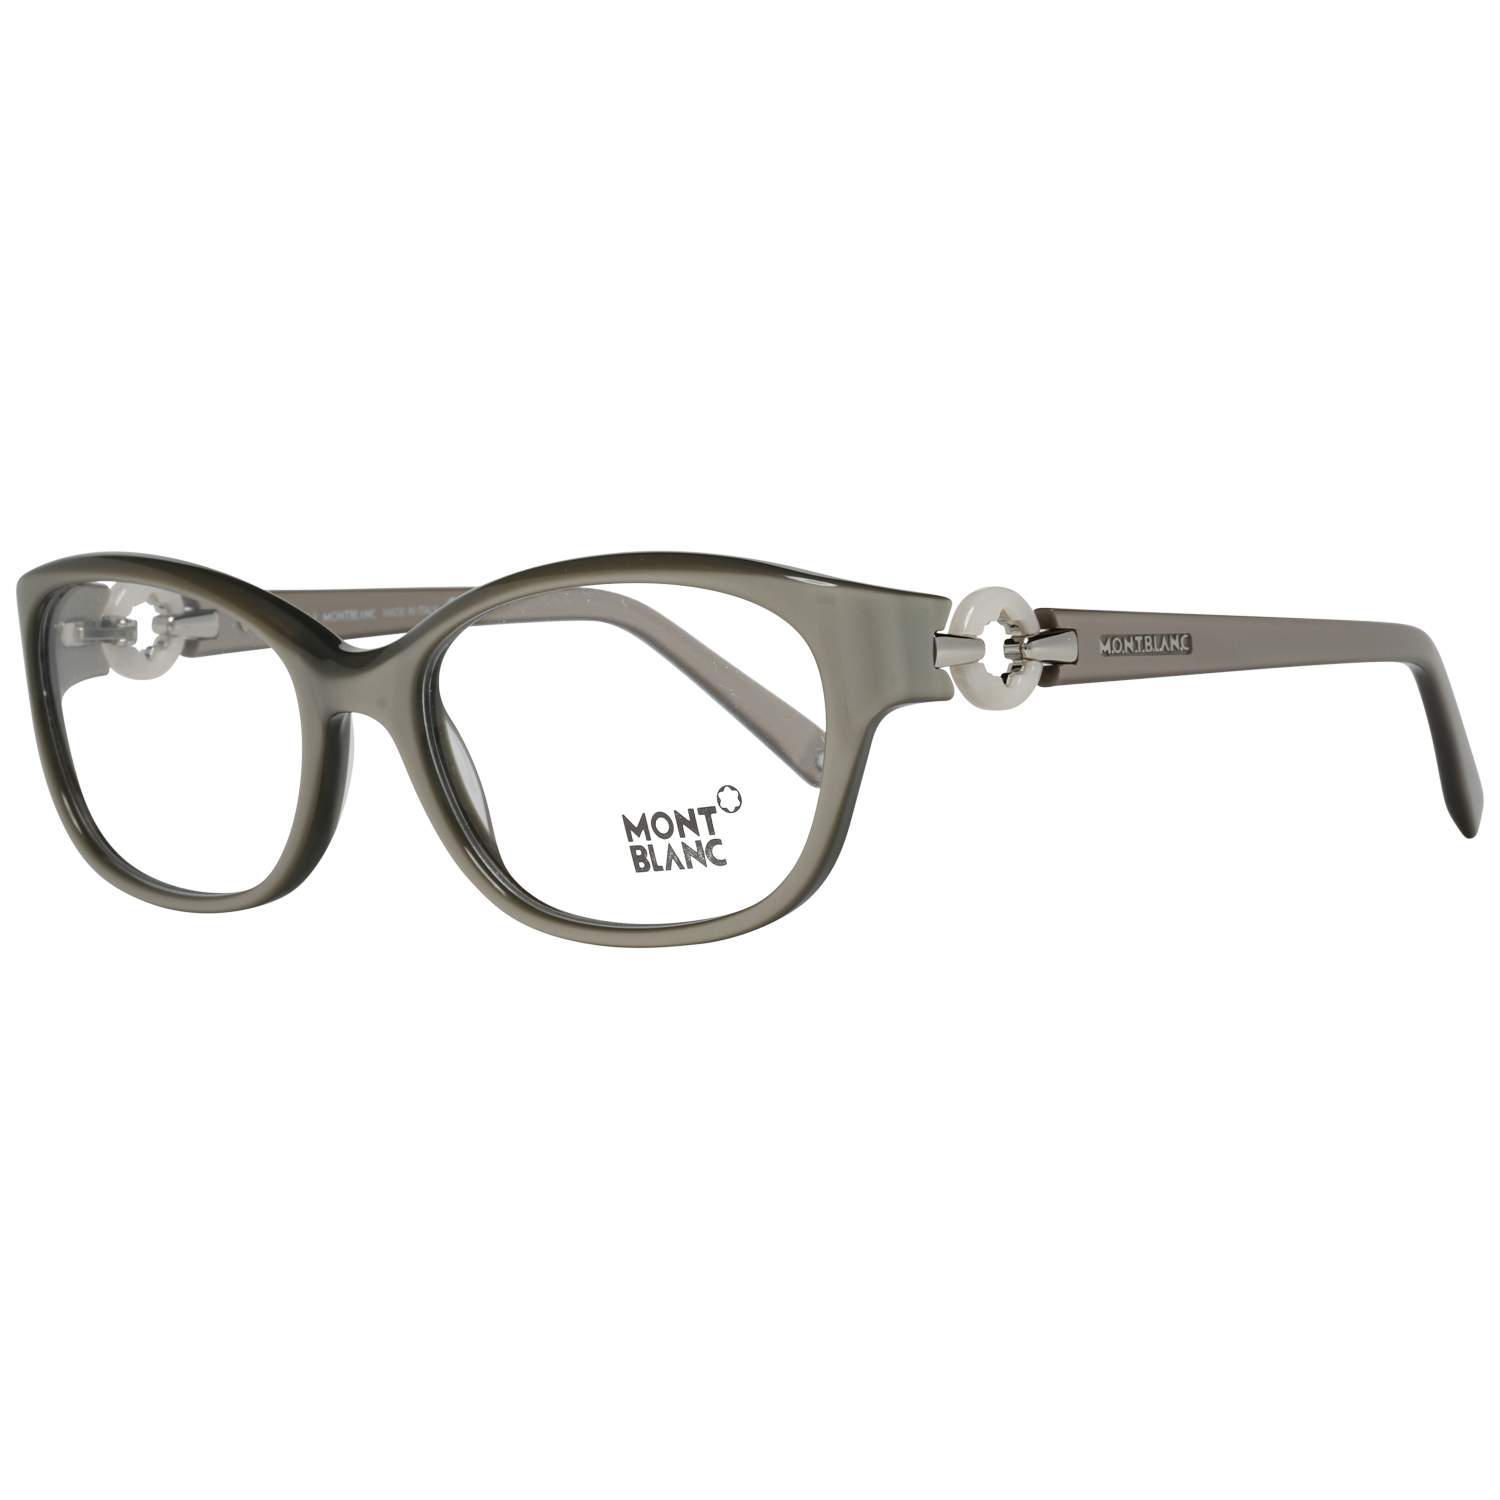 Montblanc Optical Frame MB0442 057 54 Women Grey